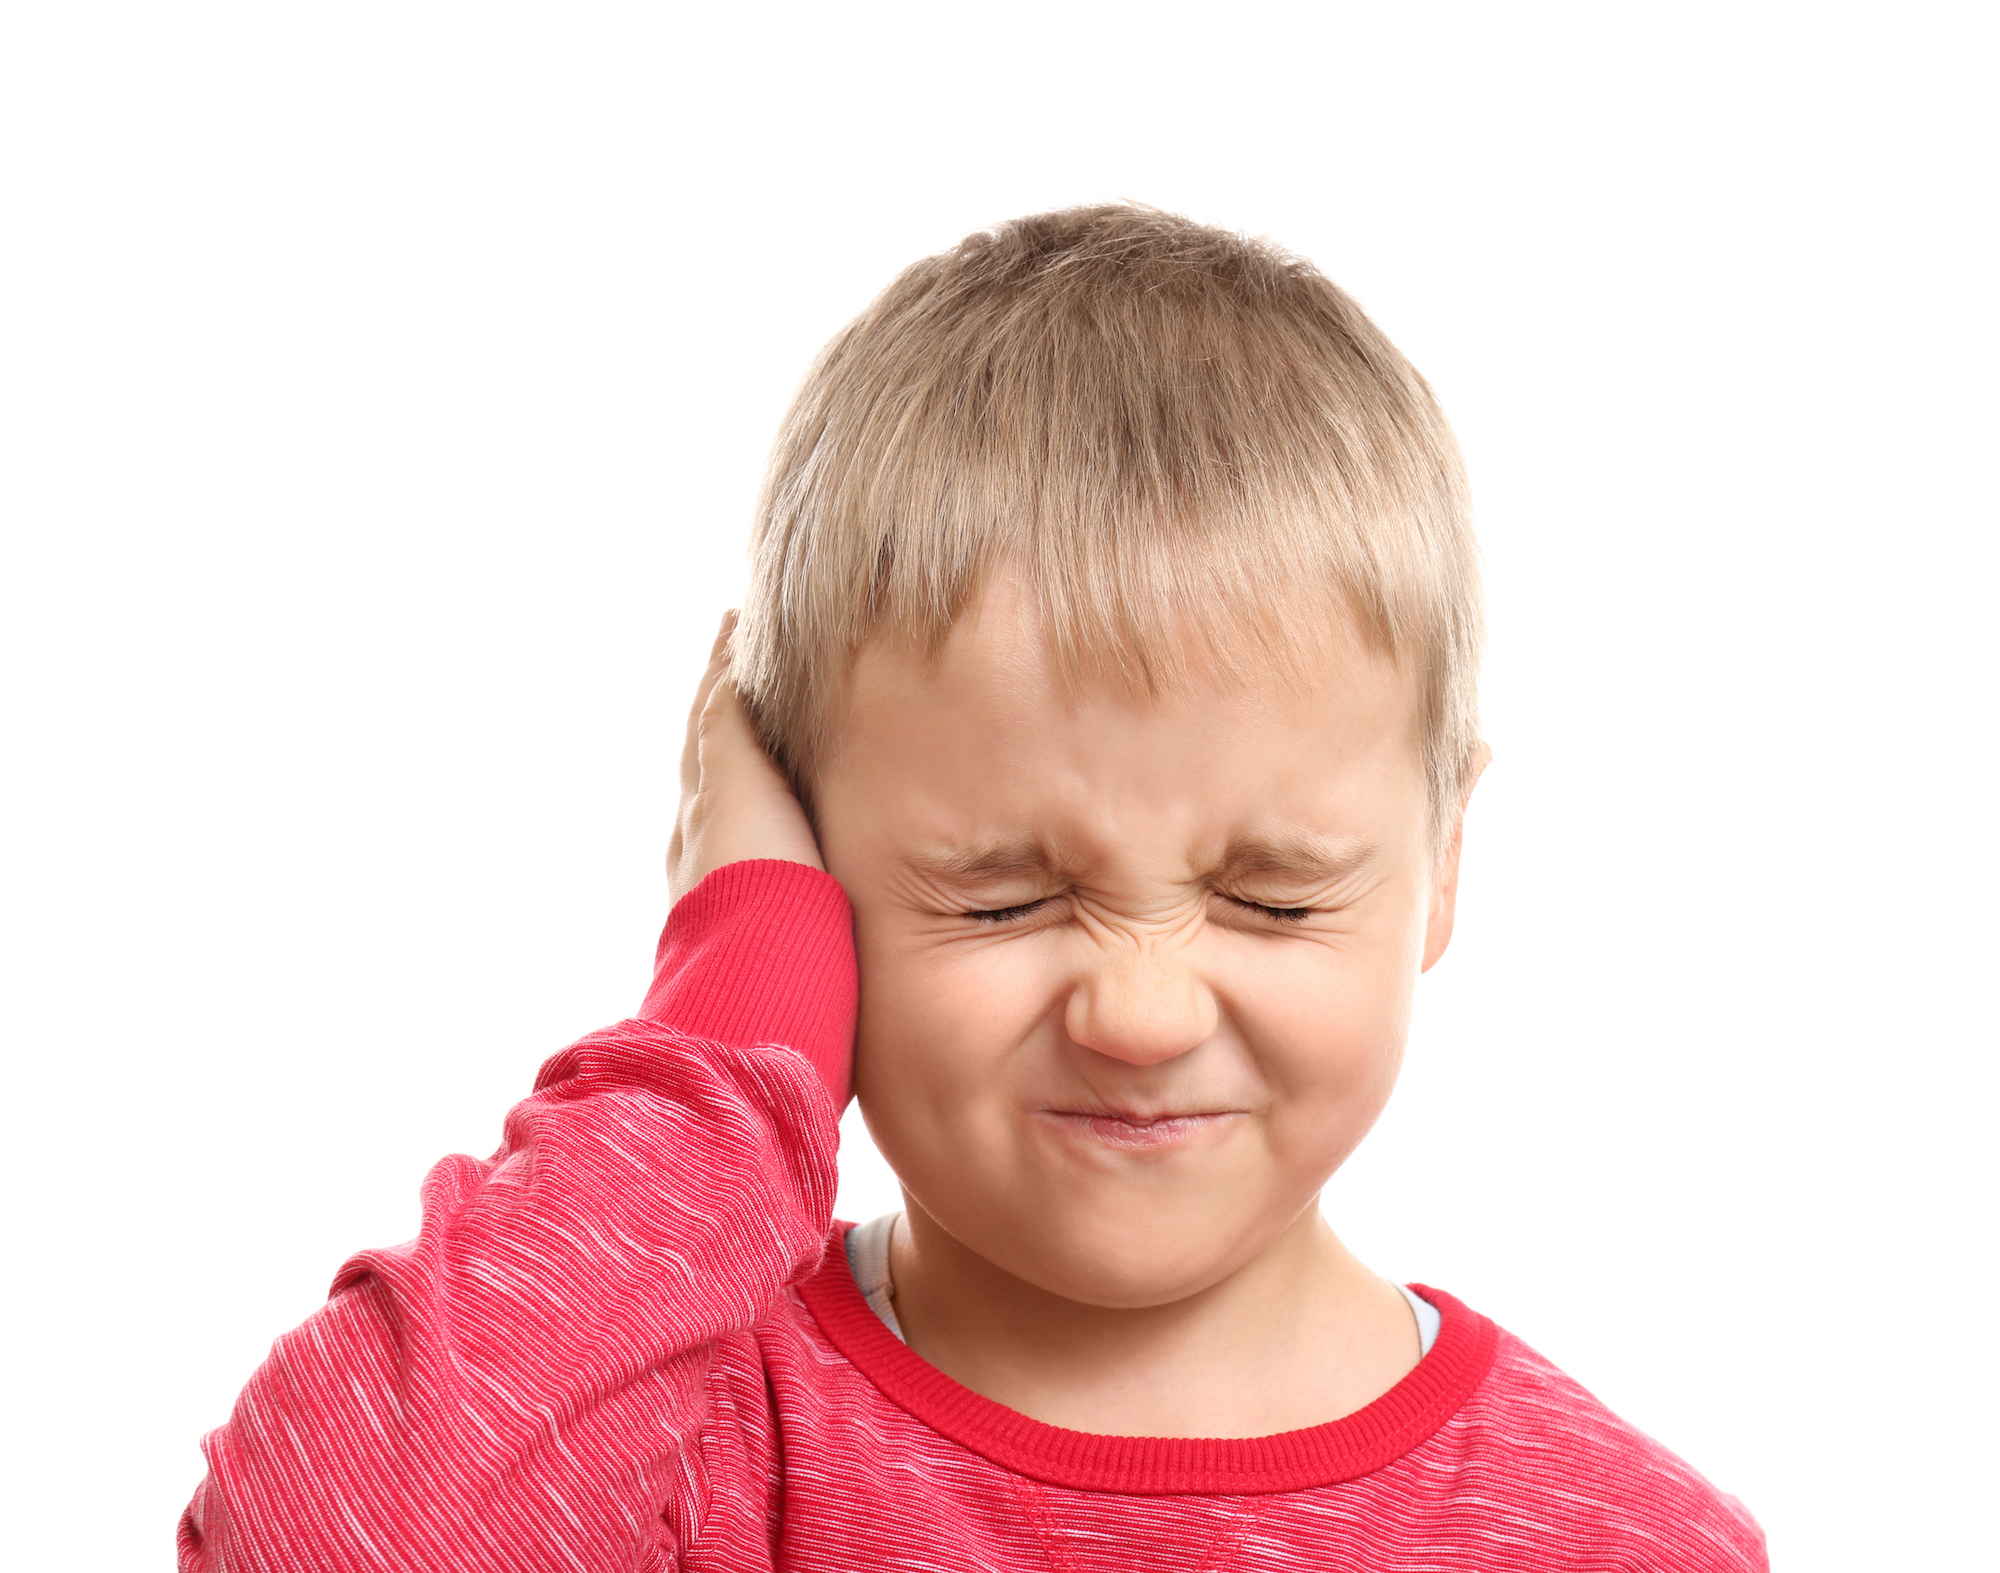 How to Use Garlic Cloves & Garlic Olive Oil for Ear Infections